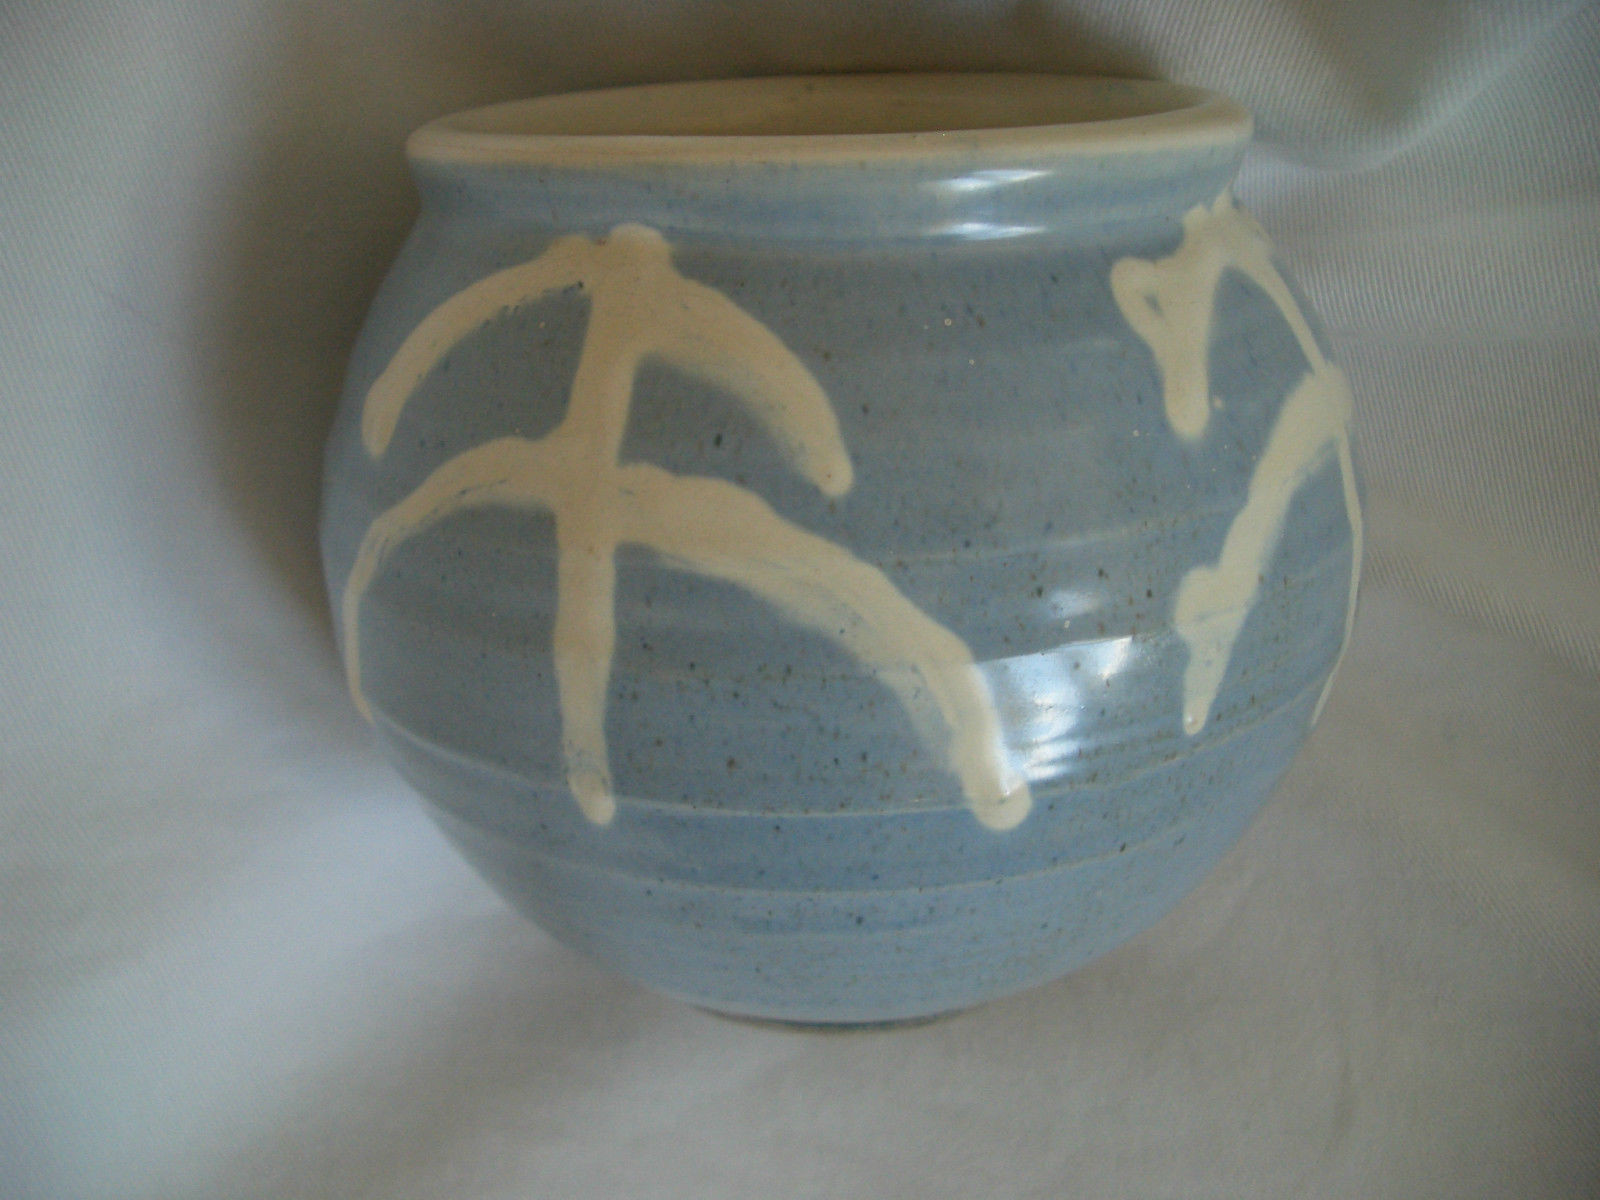 Isle Of Wight Glass Vase Of Buckfast Abbey Pottery Devon Bulbous Pale Blue Vase A8 99 Intended for 1 Of 2 See More